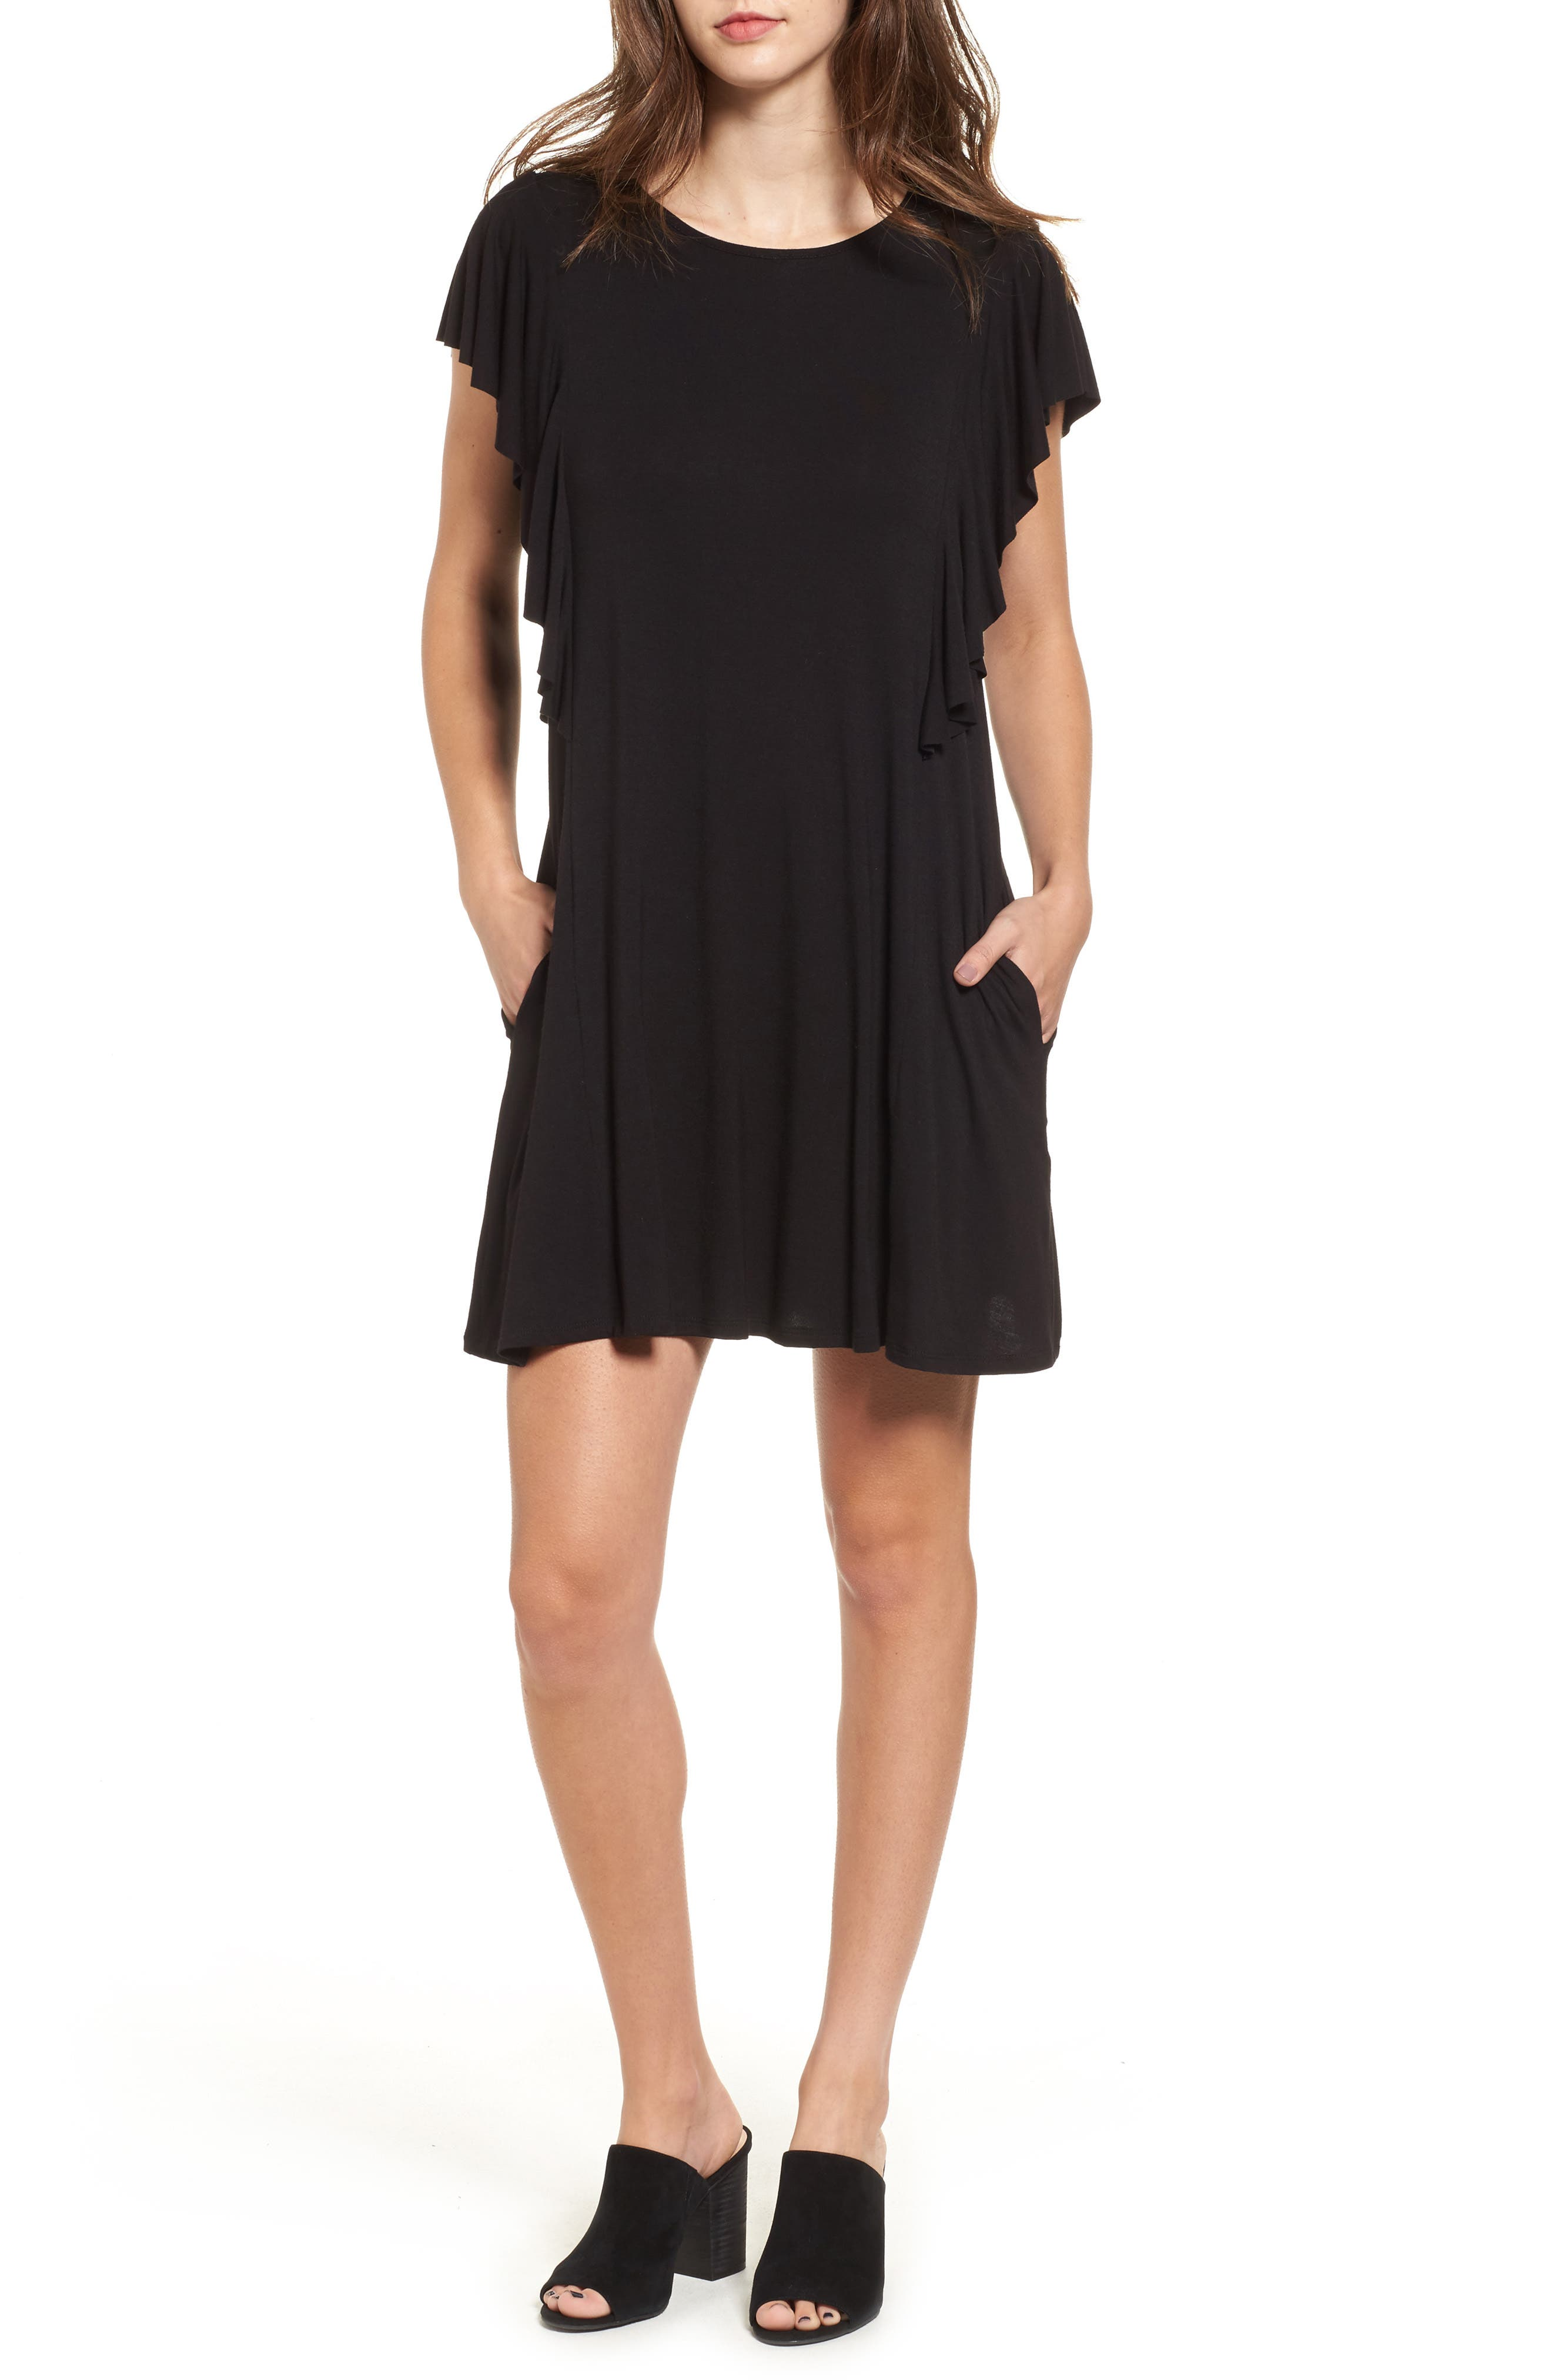 SOCIALITE Ruffle Sleeve T-Shirt Dress, Main, color, 001